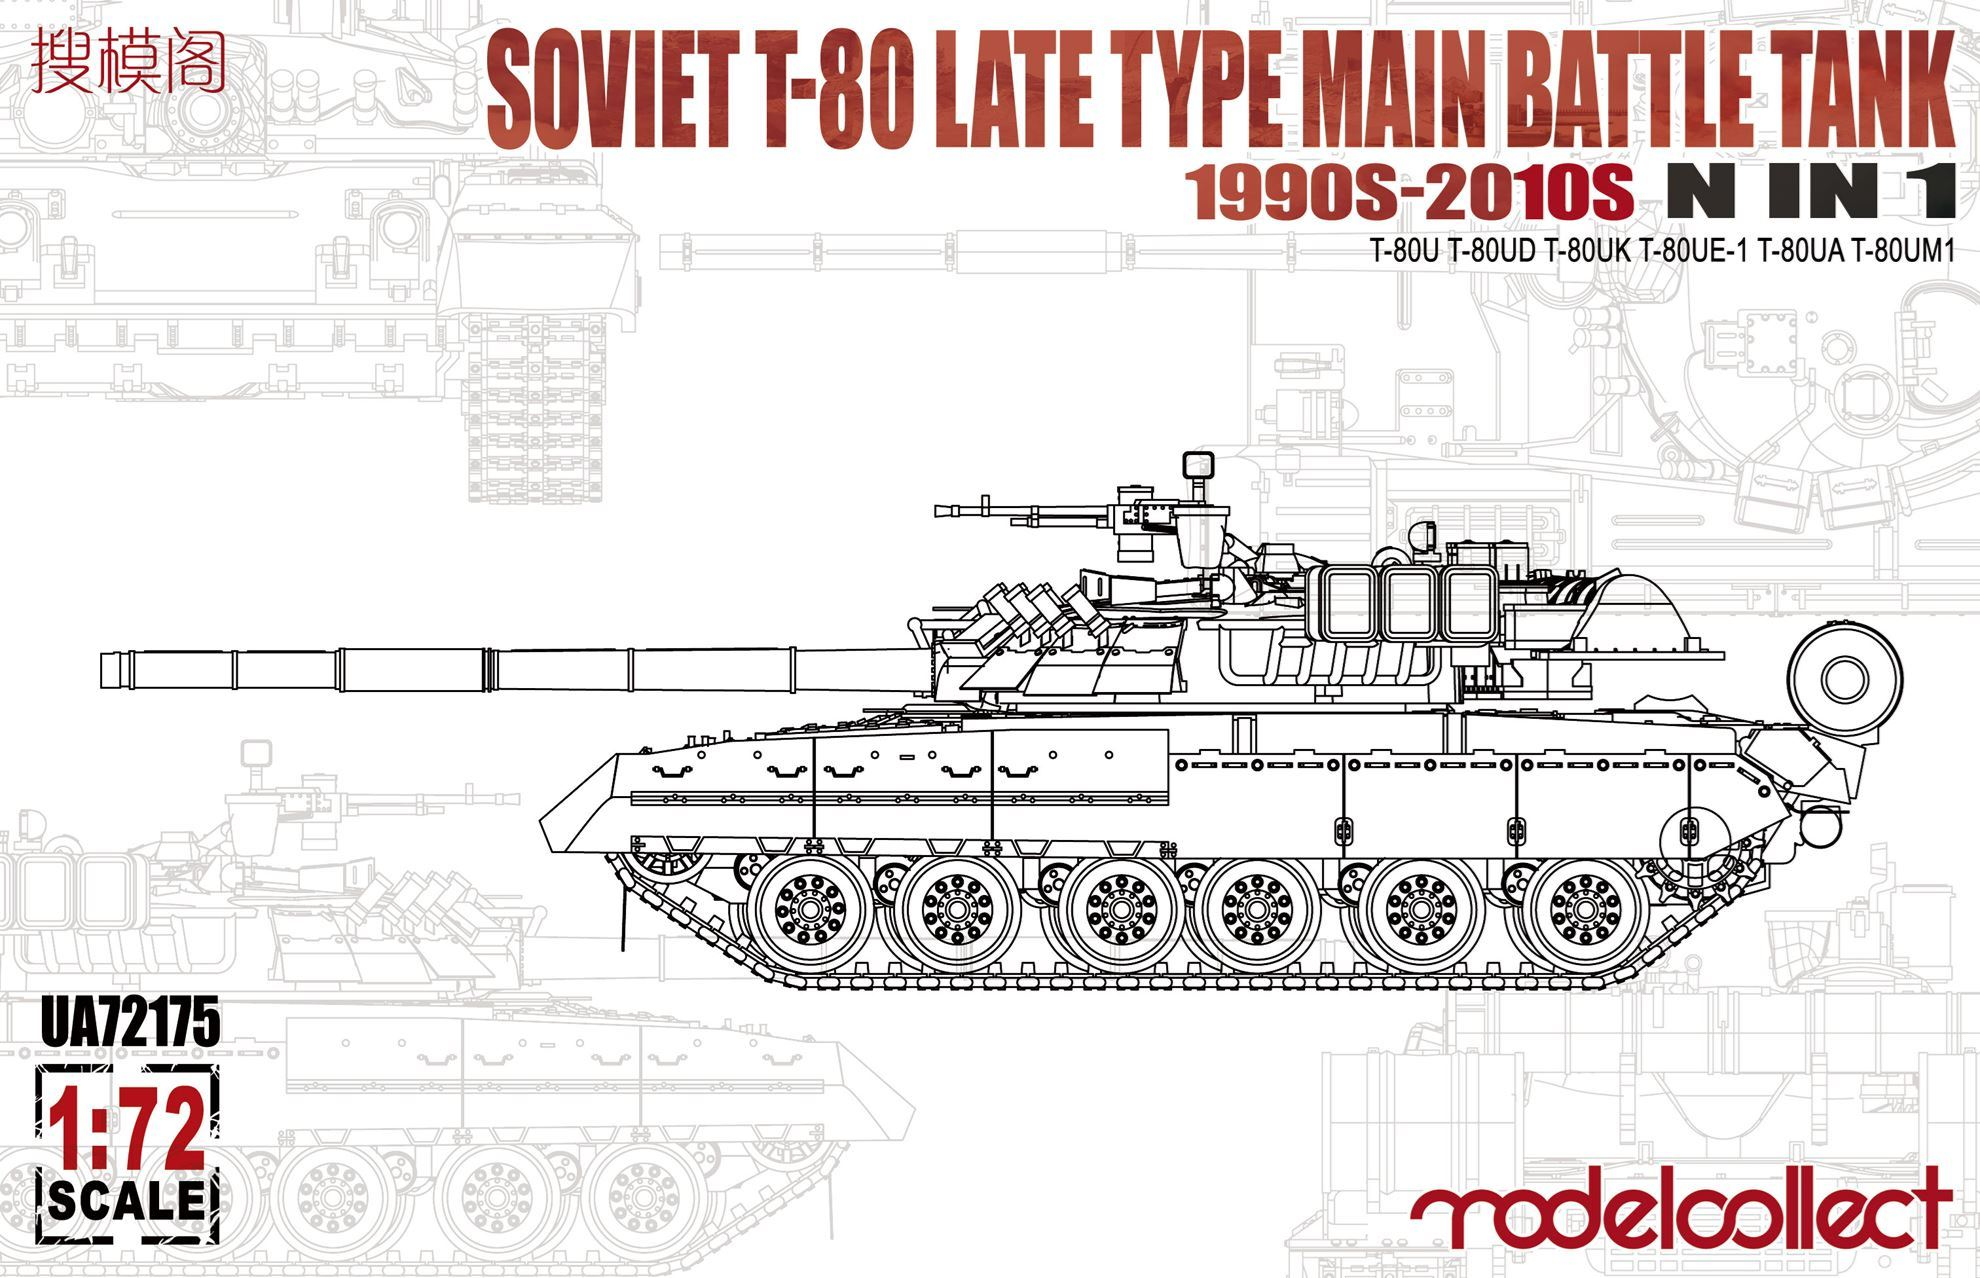 ModelCollect Soviet T-80 late type main battle tank 1990s-2010s N in 1